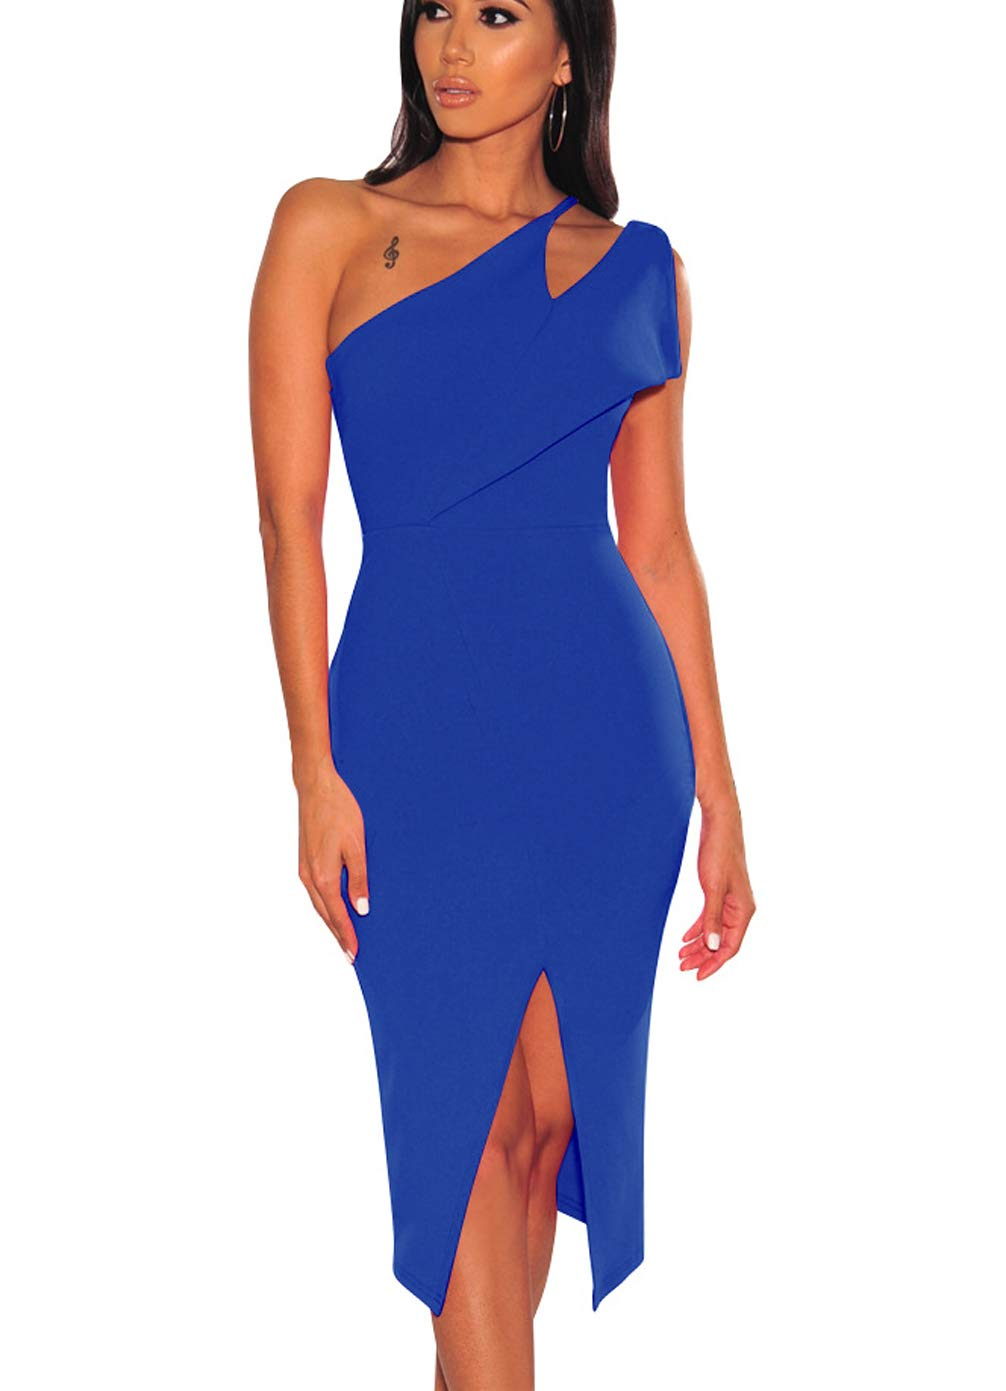 Available at Amazon: EHNSYZYU Women's Sexy One Shoulder Slit Skirt Work Elegant Backless Pencil Wrap Party Gown